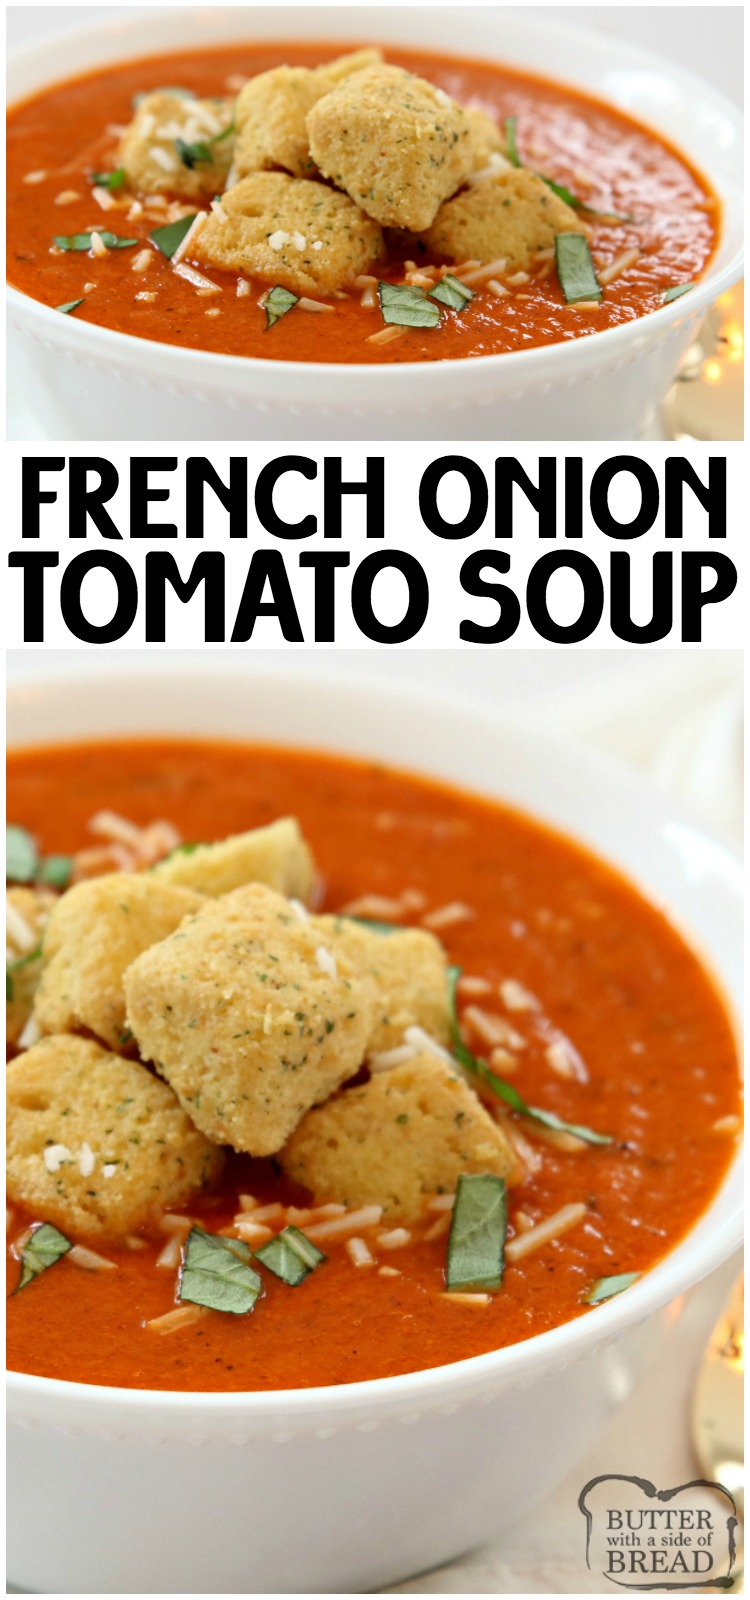 French Onion Tomato Soup combines two favorites in an easy to make, delicious tomato soup. Tomatoes, sweet onion, butter and broth blend together in this flavorful homemade tomato soup recipe perfect for weeknight dinner. #soup #tomato #frenchonion #onion #recipe #lunch #dinner #food from BUTTER WITH A SIDE OF BREAD